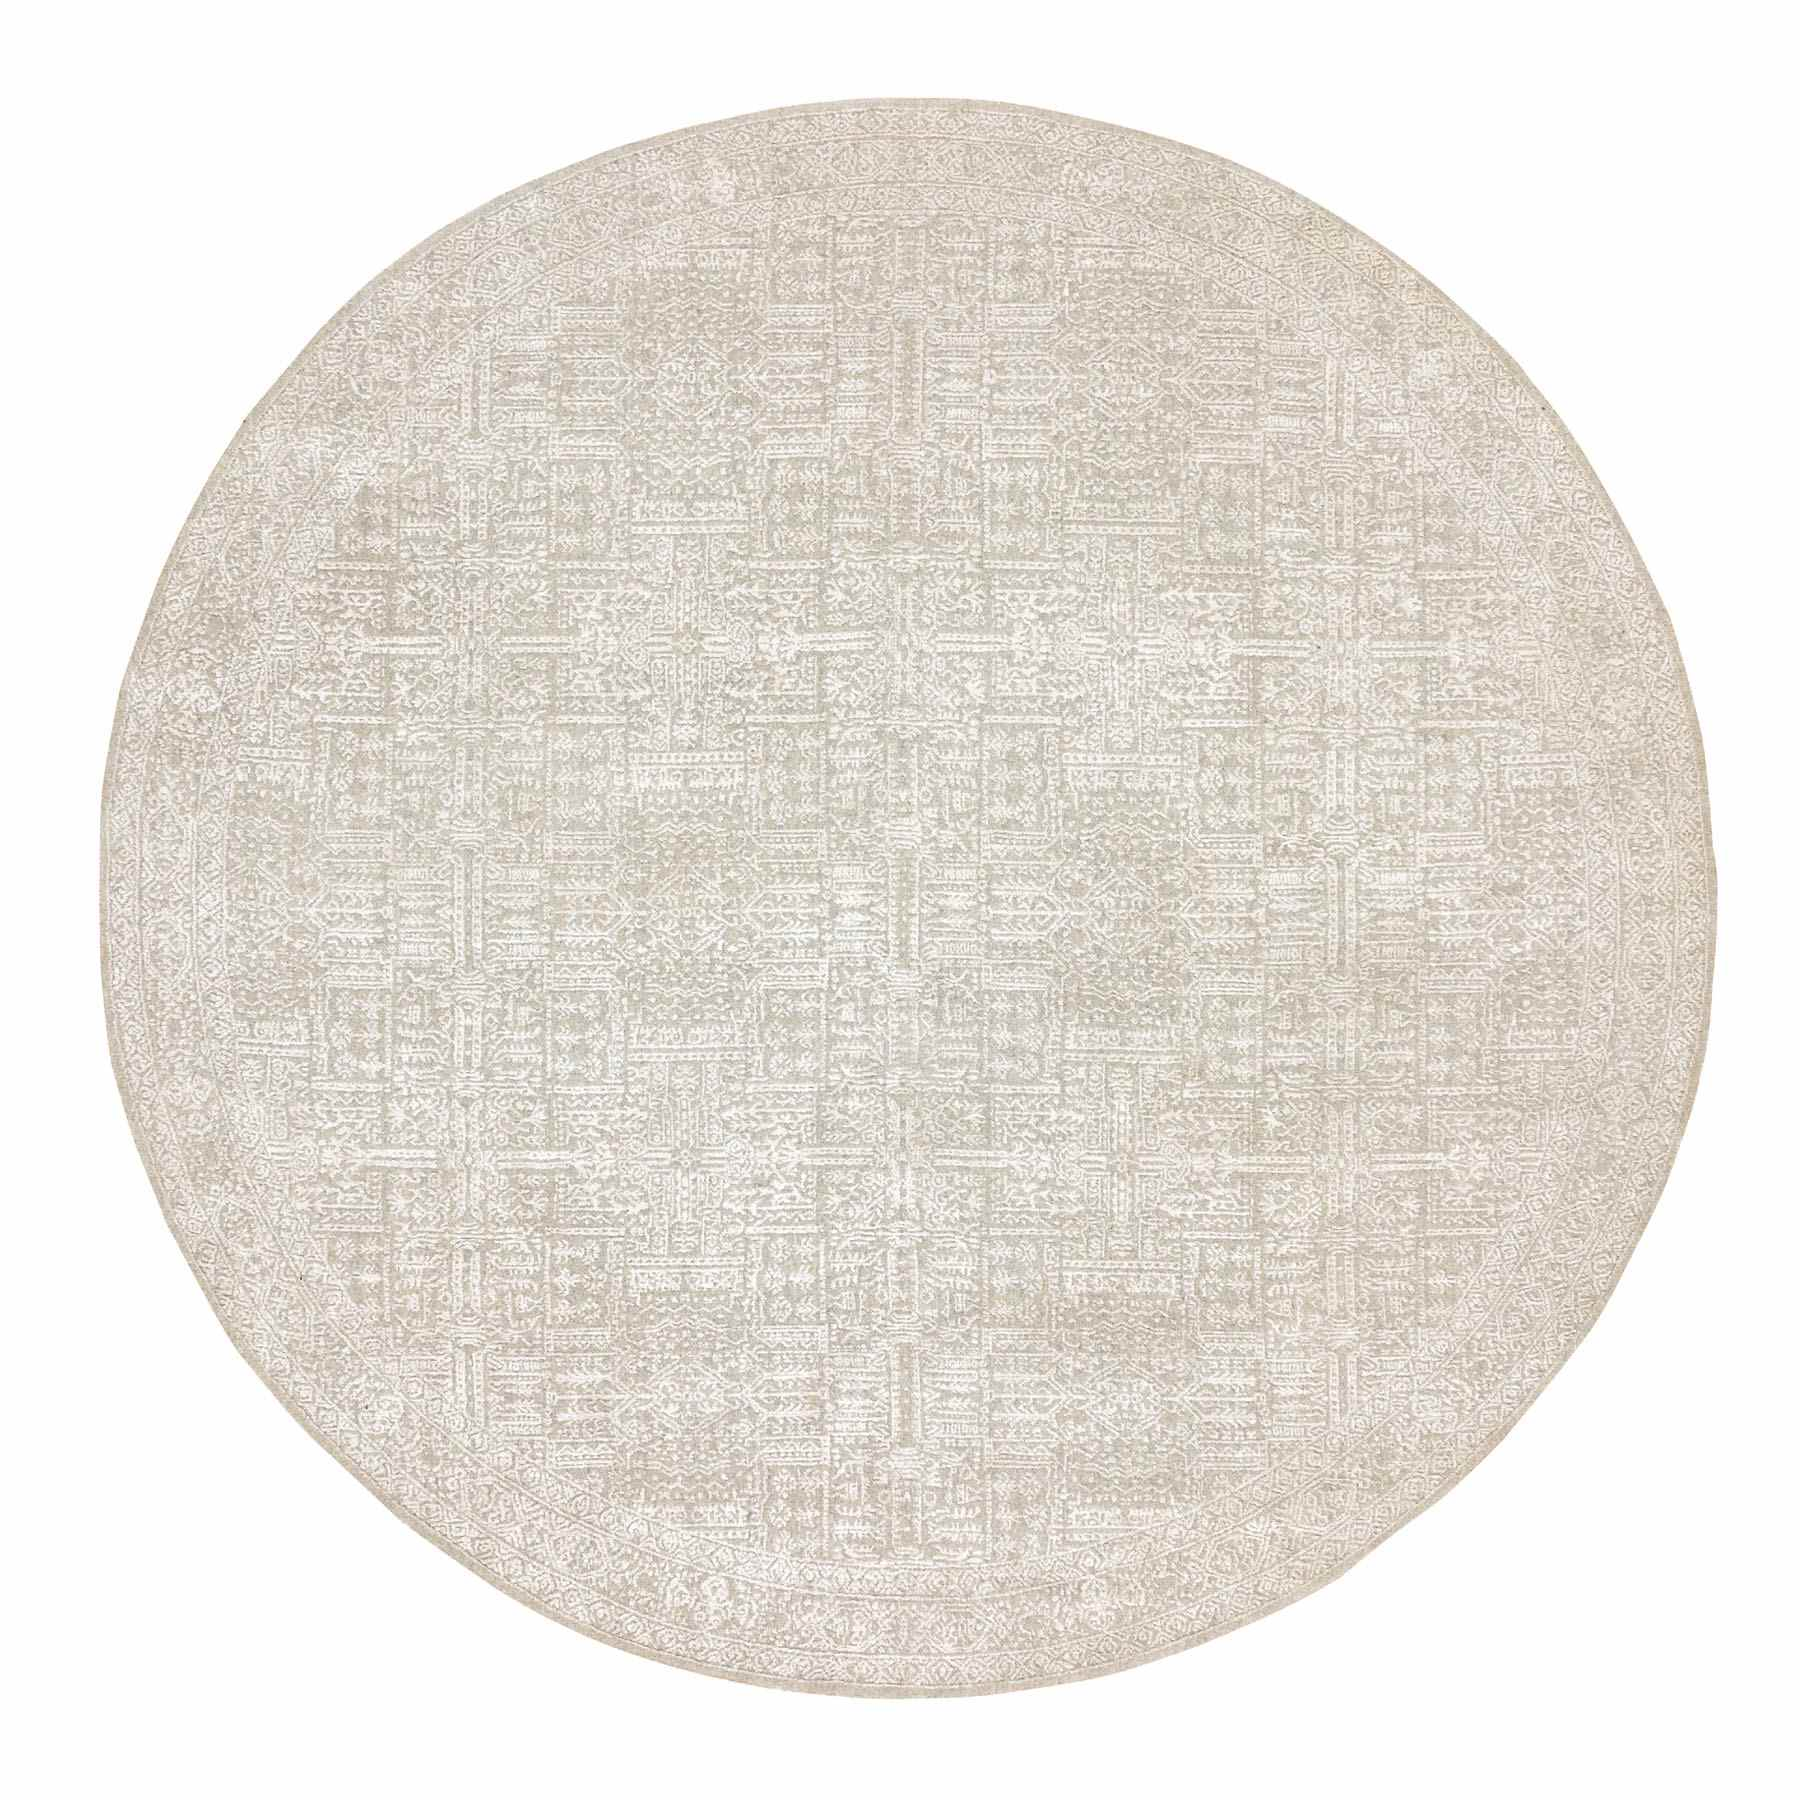 Beige Fine jacquard Hand Loomed Round Wool And Art Silk Modern